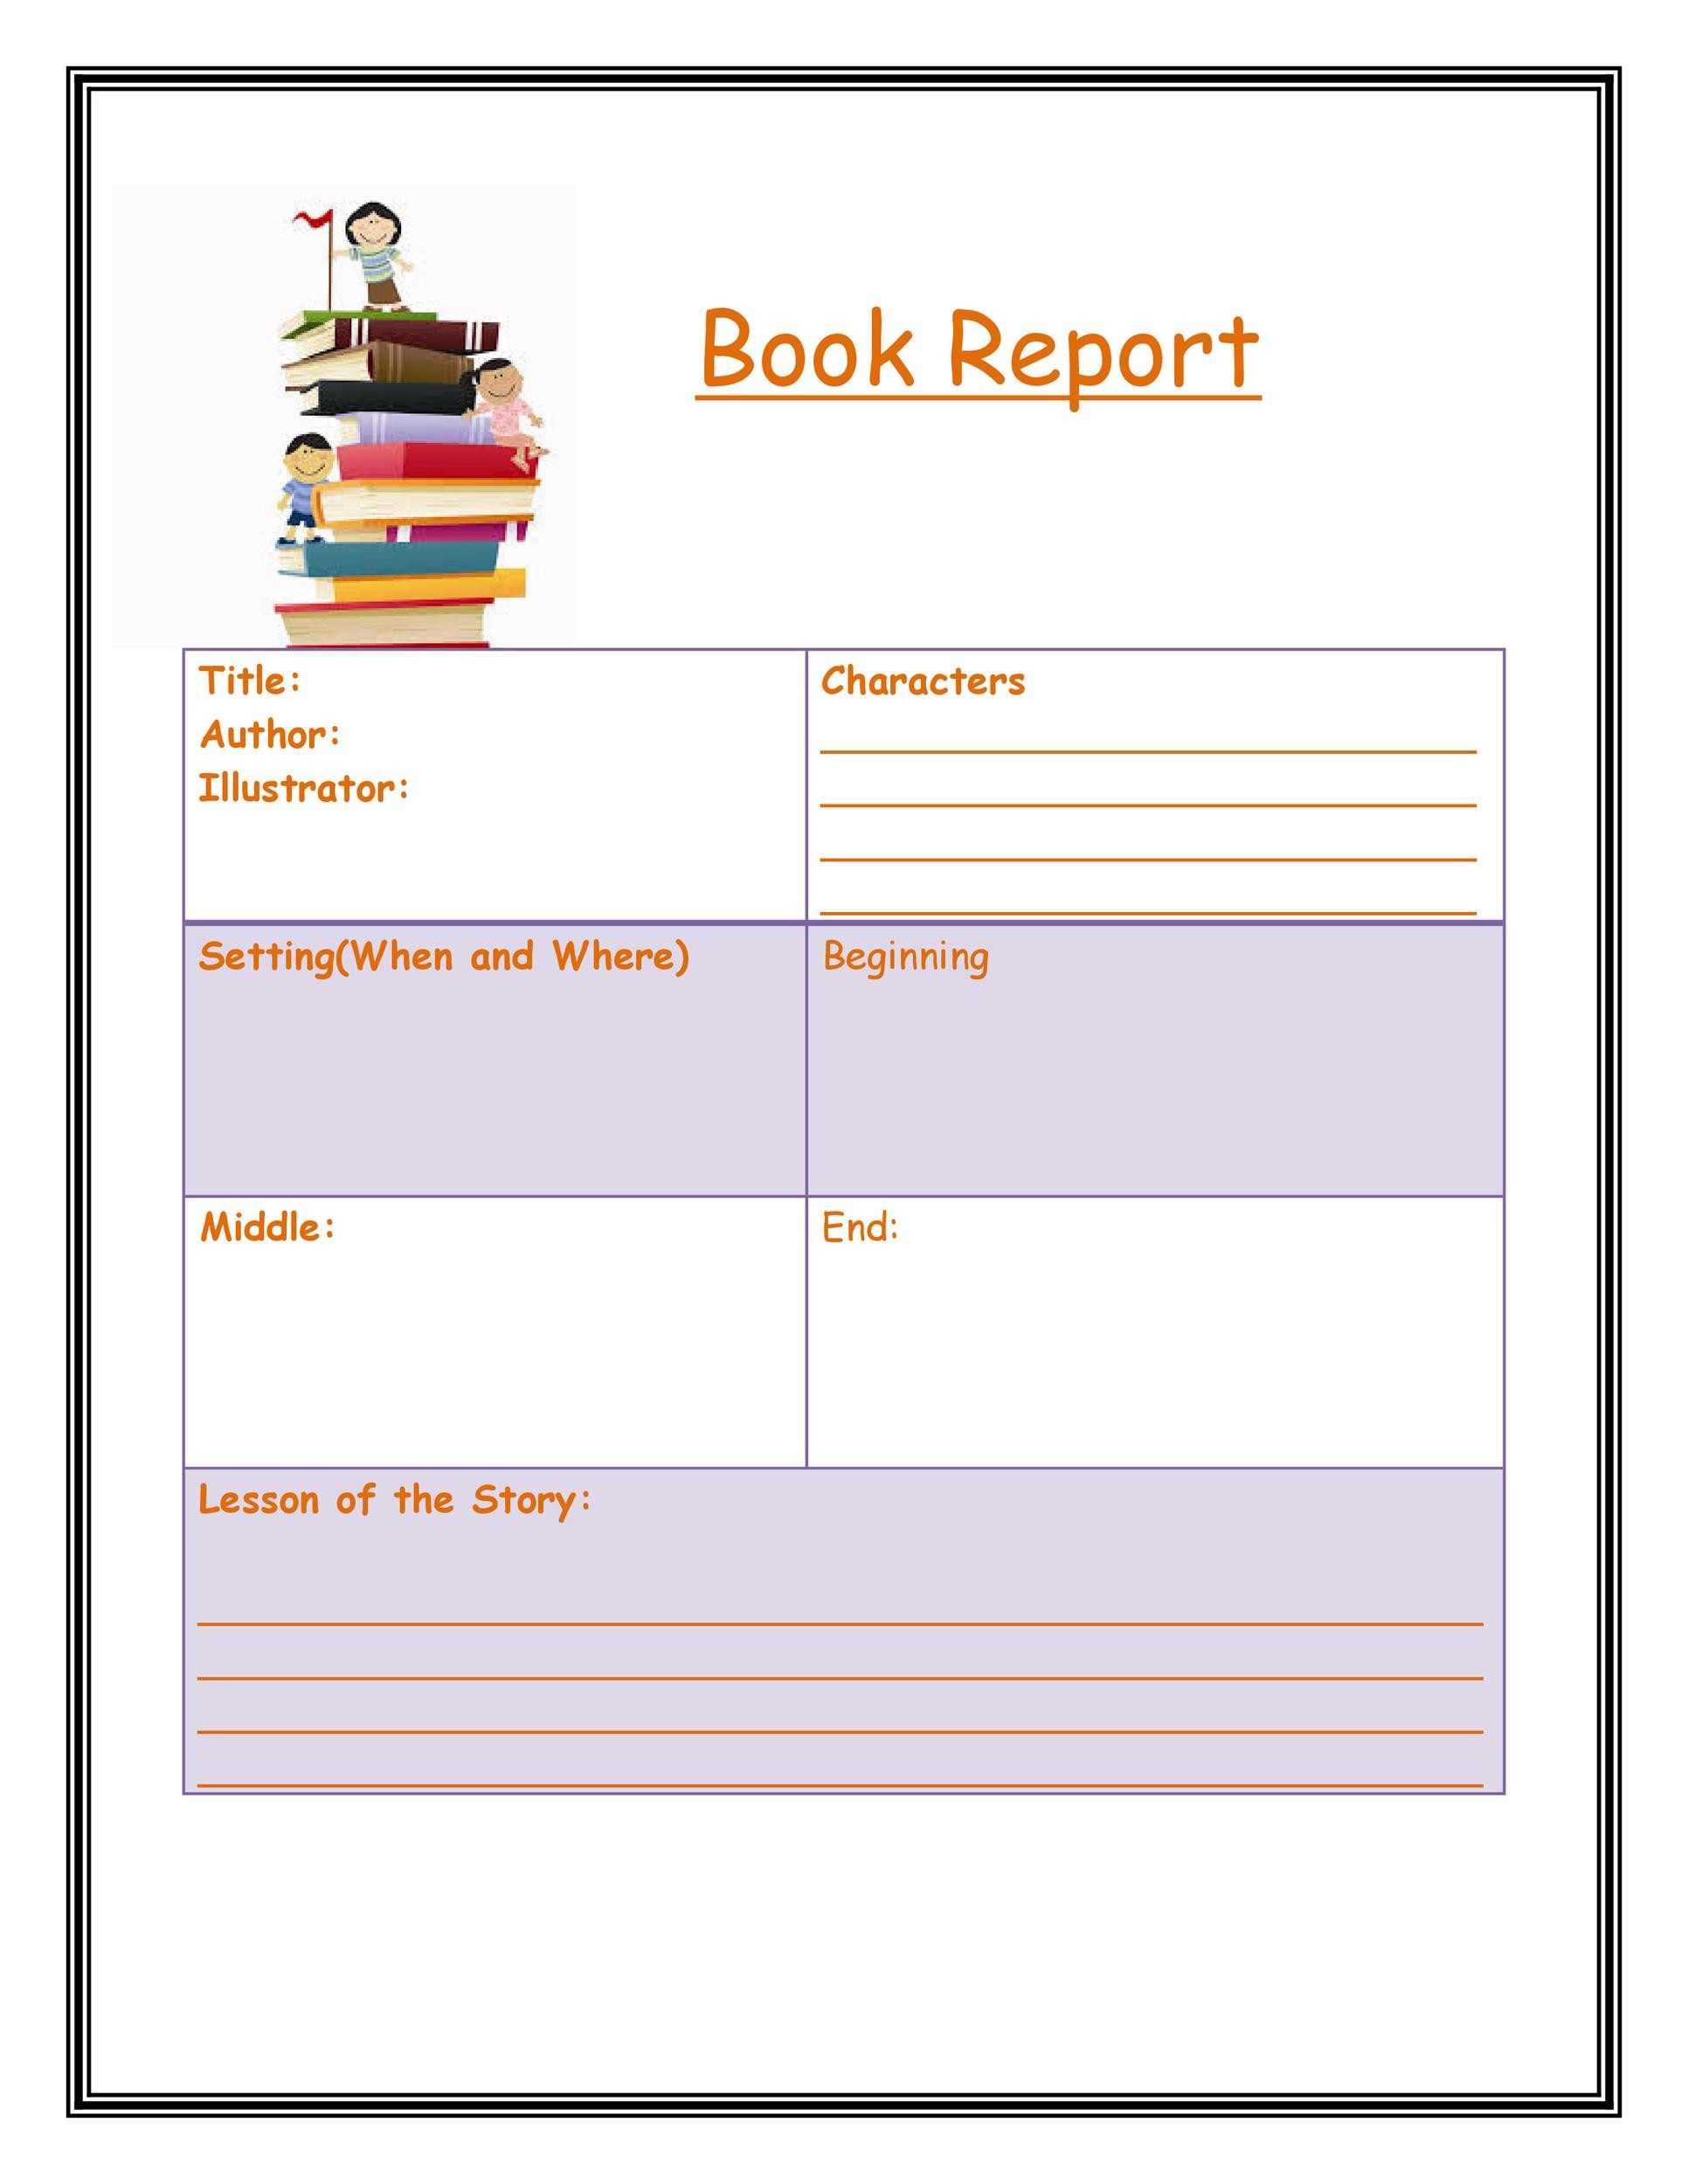 Book Report Template Free